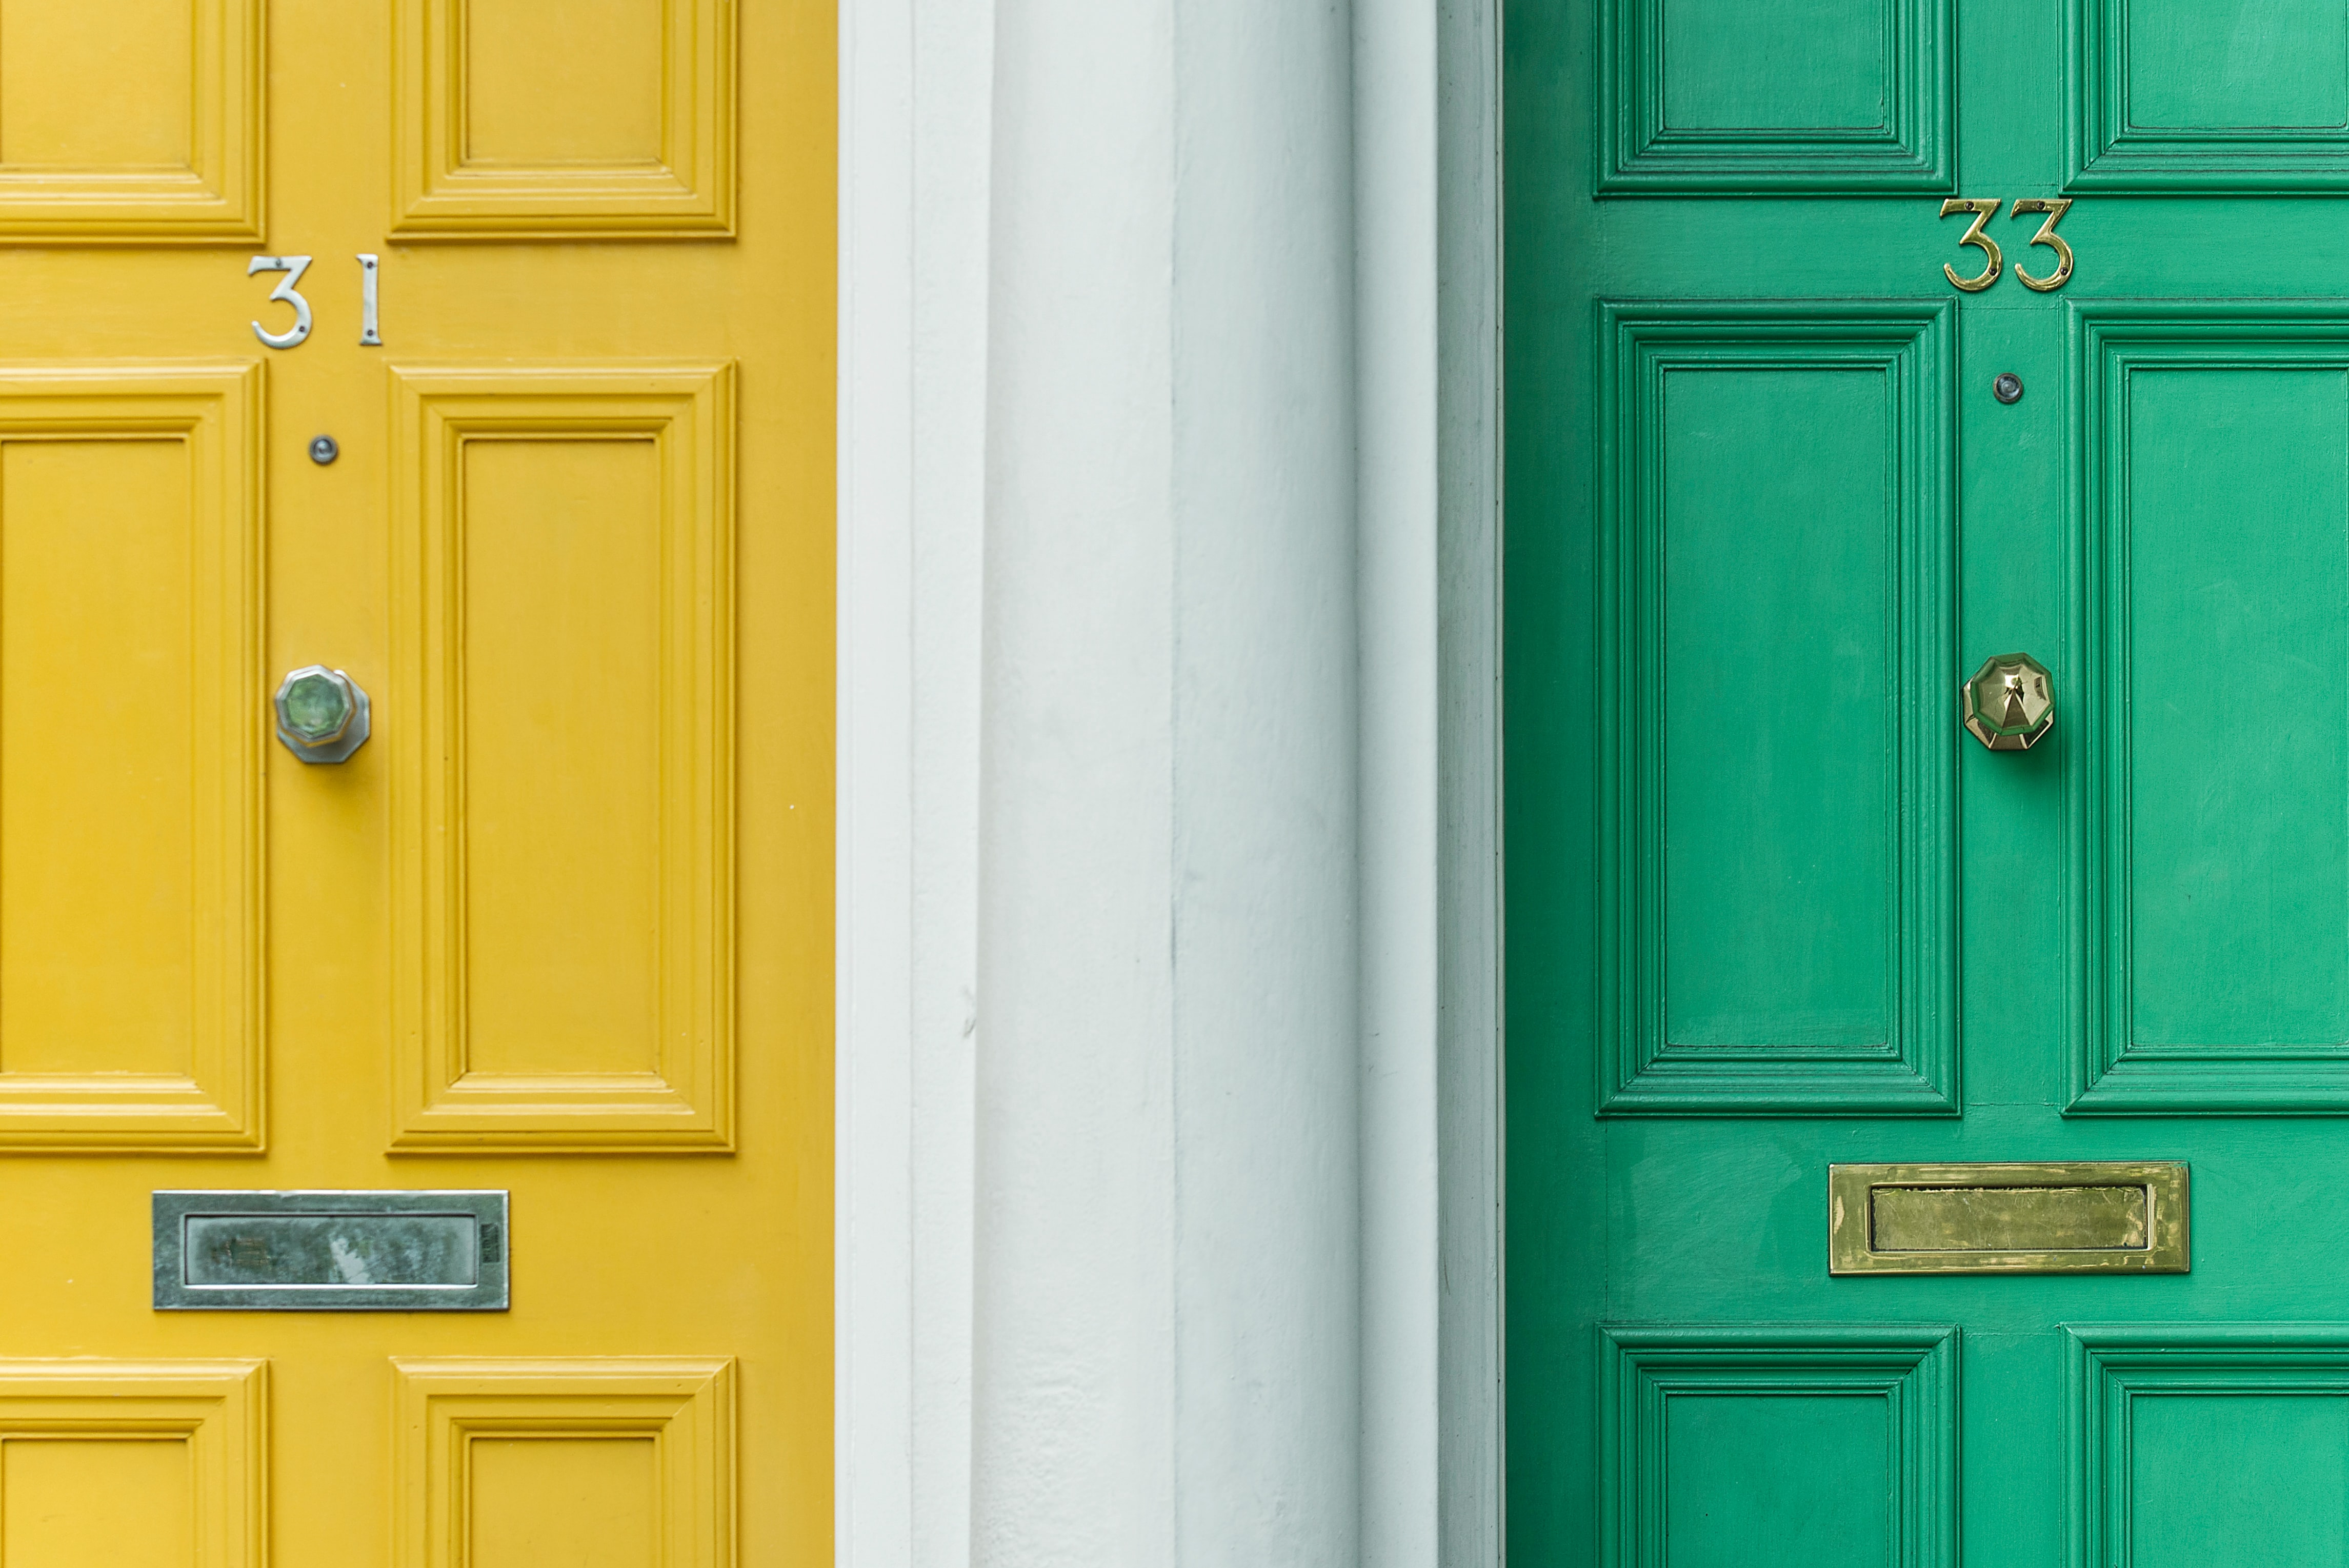 Apartment Living: How to Be a Good Neighbor